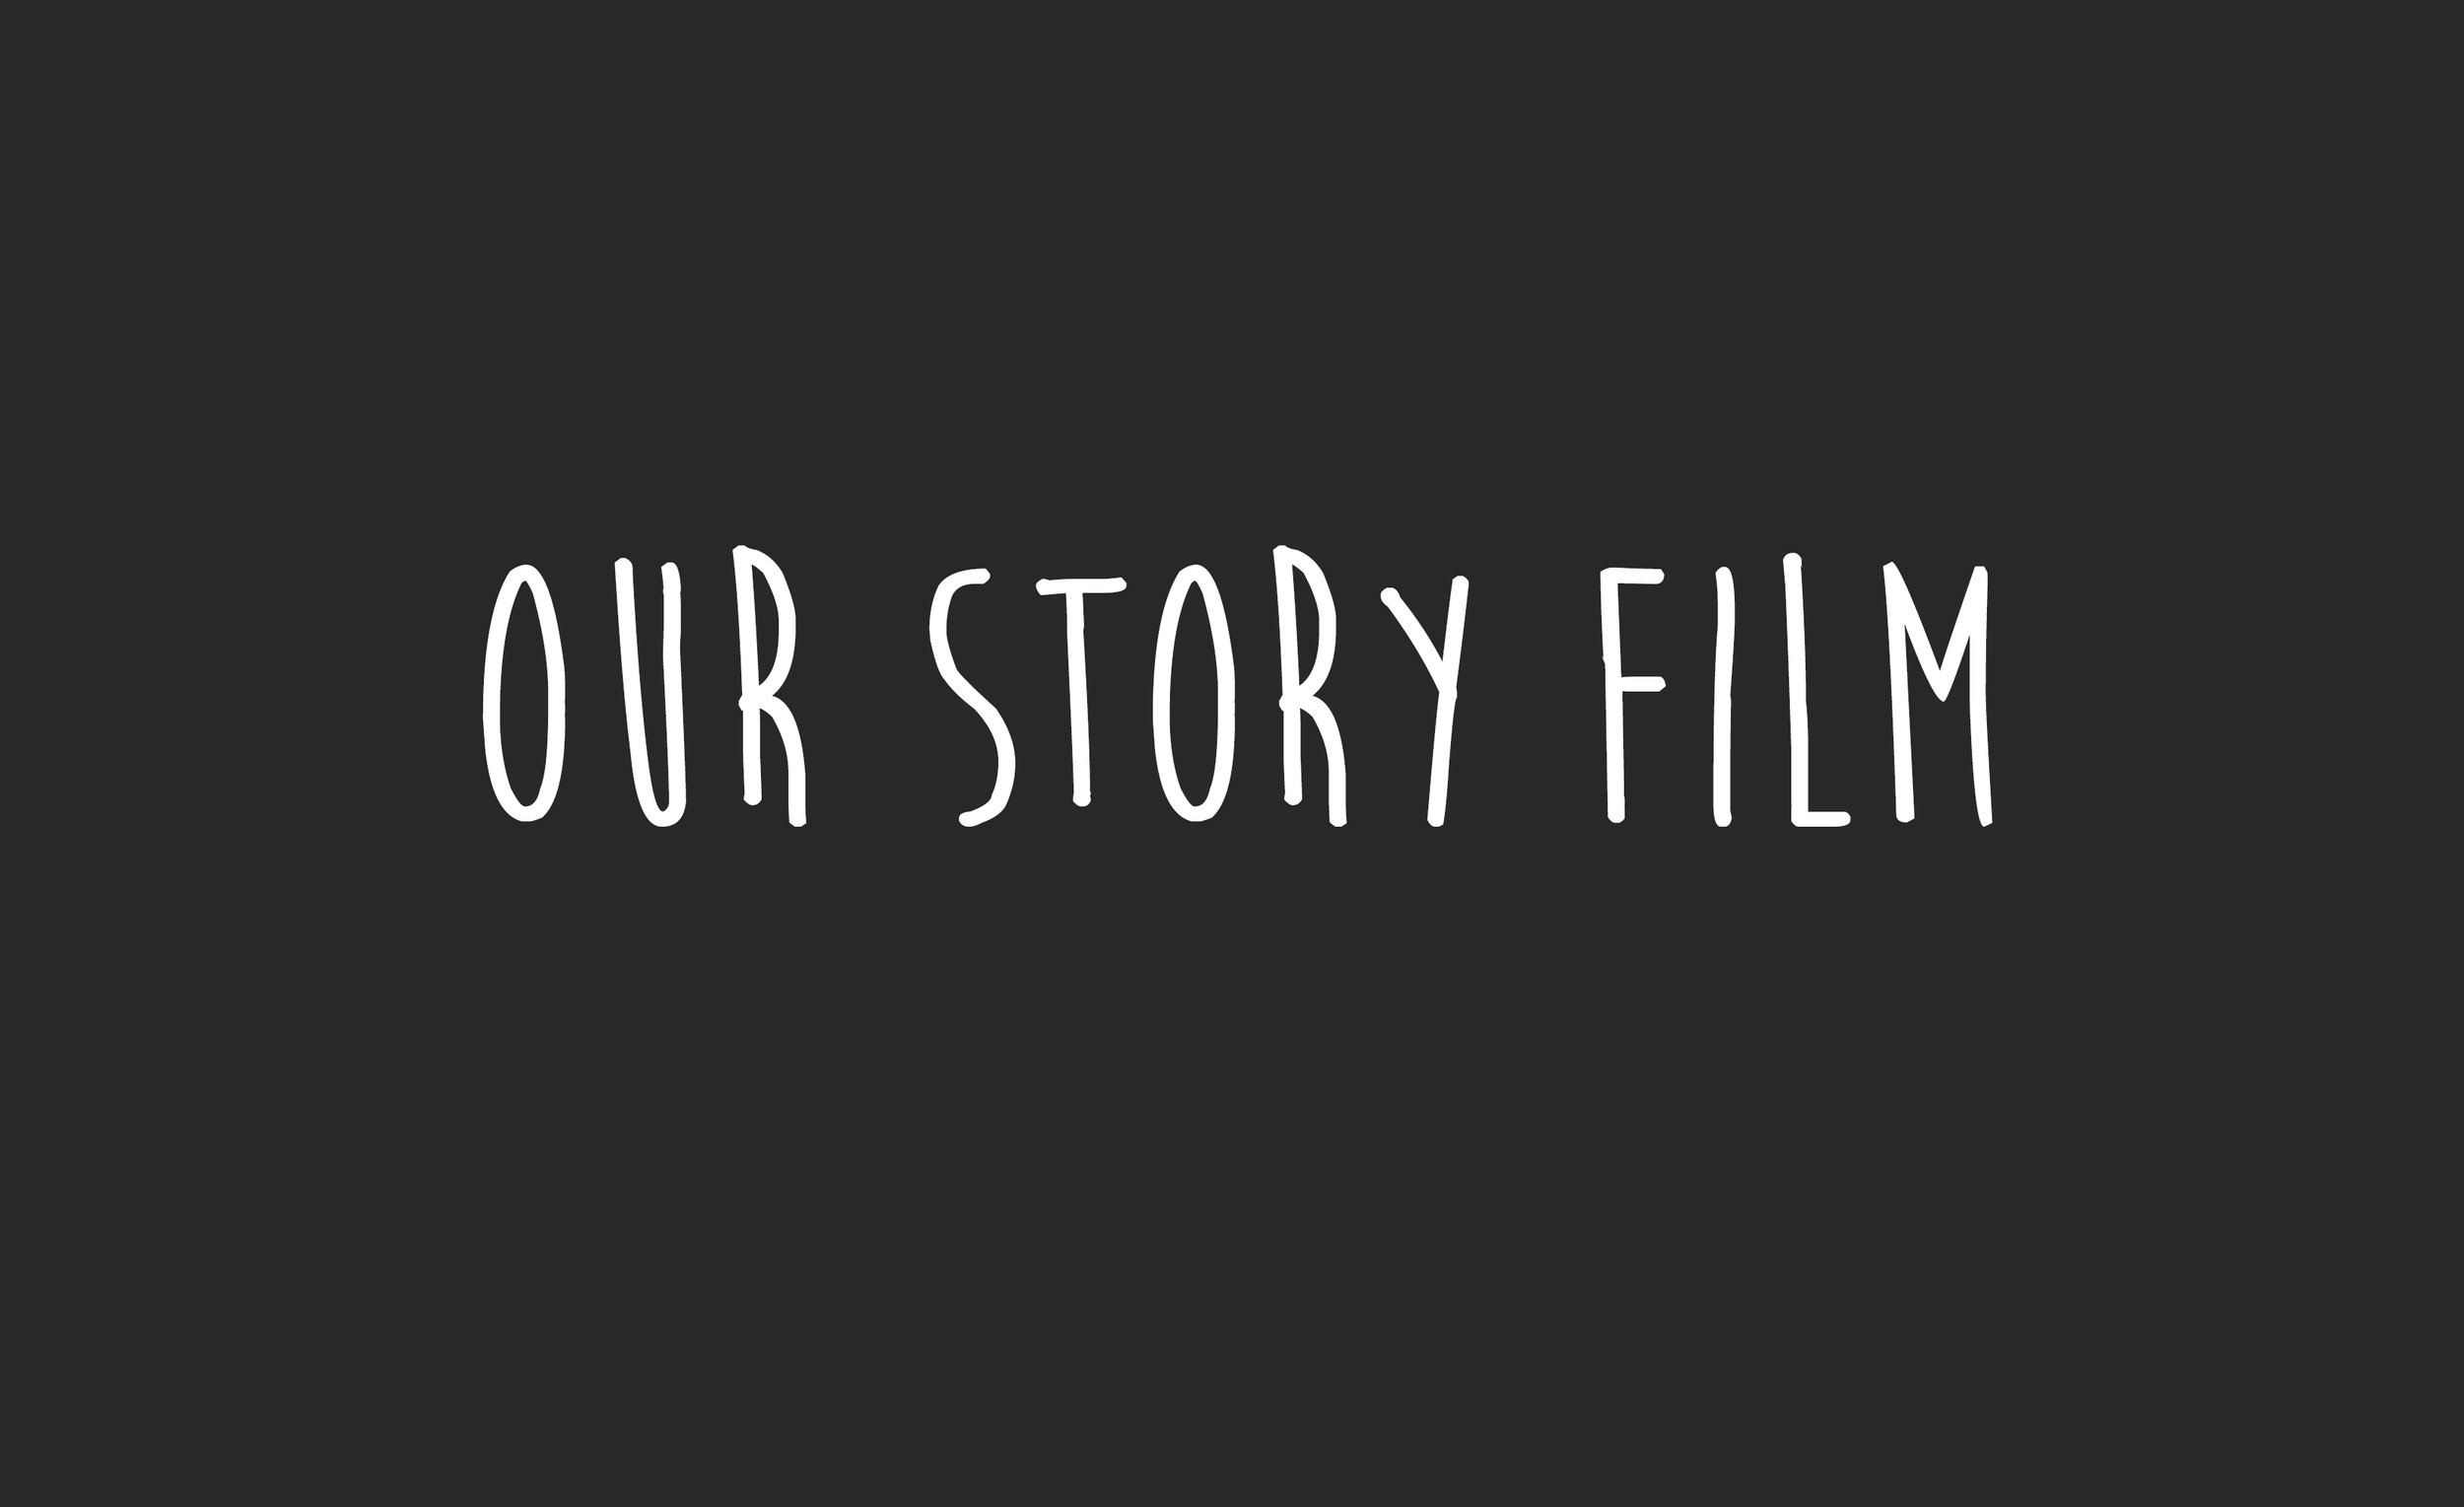 $500 - If you have time the weekend of your wedding or before, let's get out and make a short film about your story as a couple. I like to incorporate interviews with the two of you as the storytellers. This is accompanied by footage of you enjoying some of the things you love to do together. It's a romantic and beautiful way to share your love story. Usually ends up being about 2-3 minutes in length.